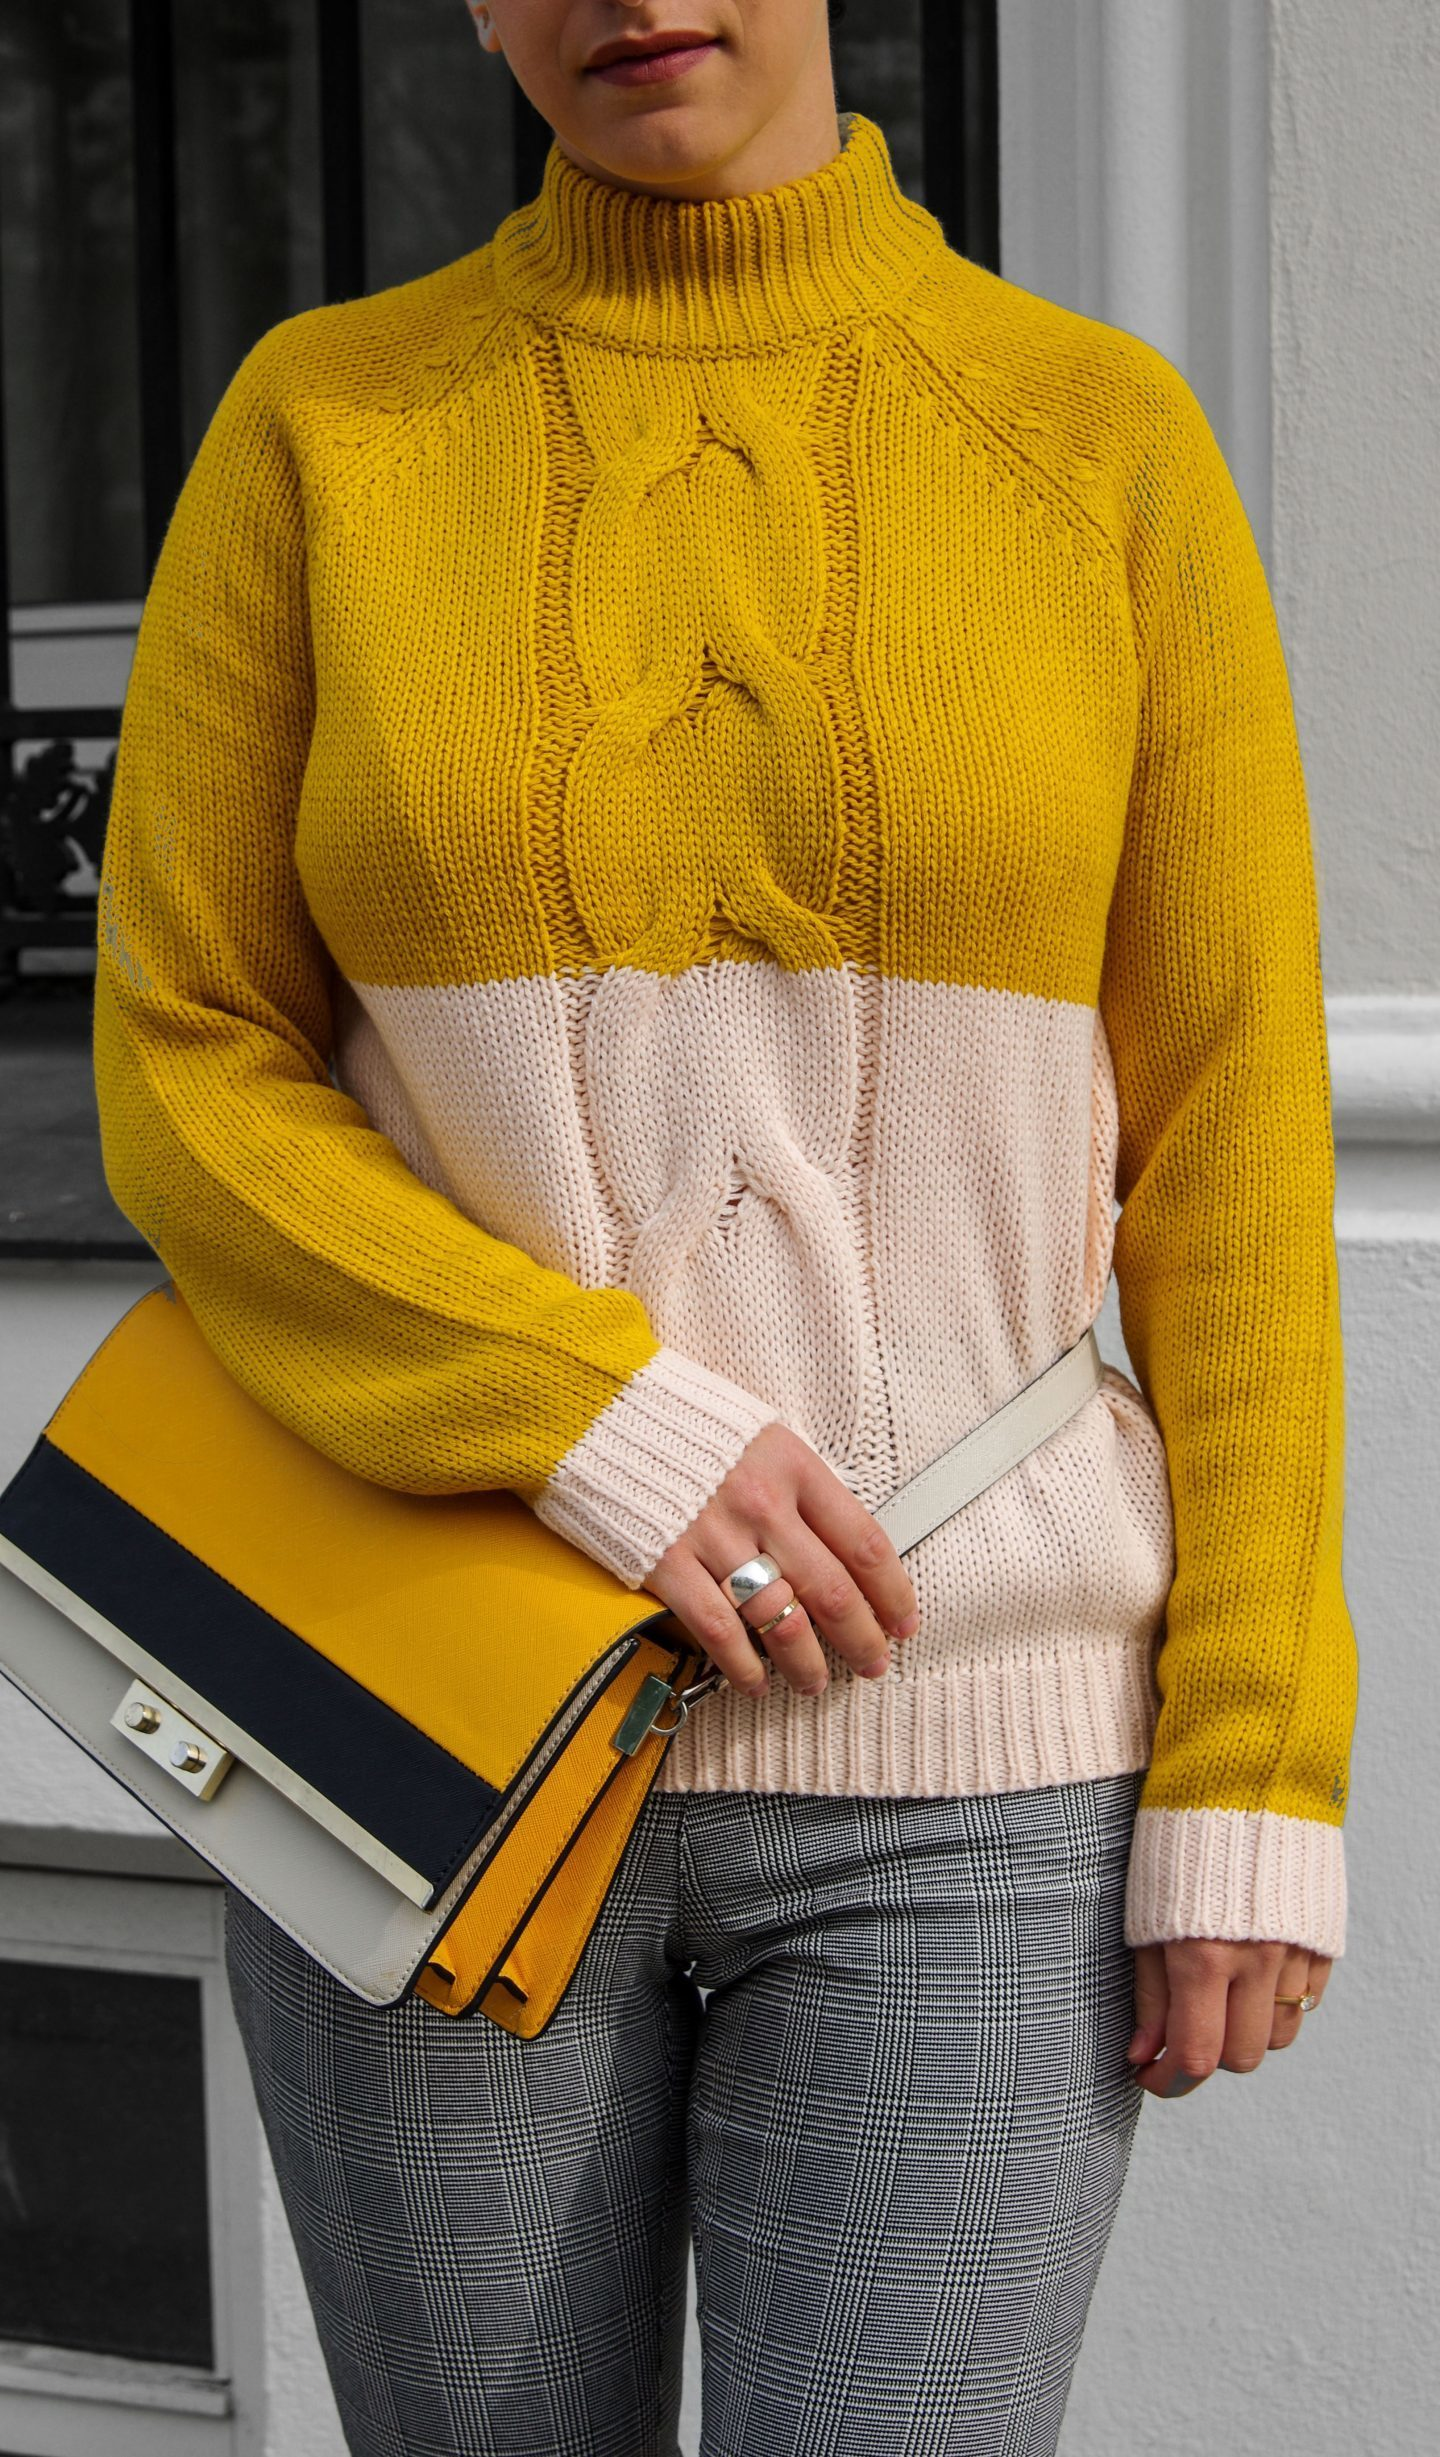 Yellow sweater copy Fall fashion Autumn essential pieces 2017 ds